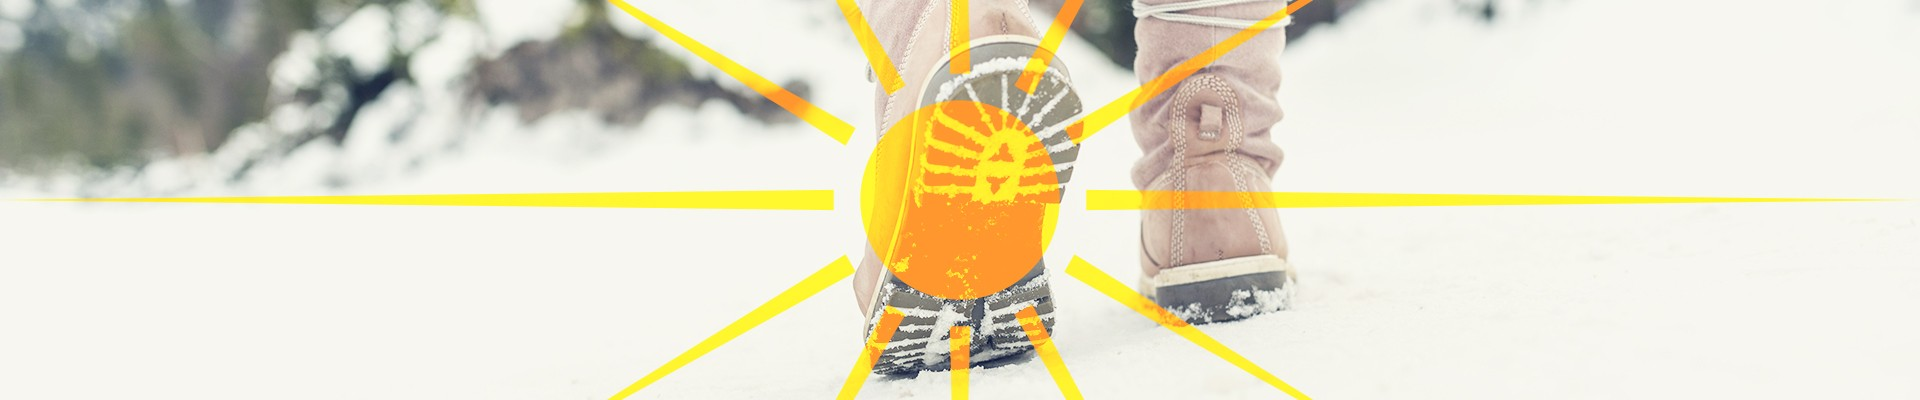 Take a mid-day walk in the sun during winter